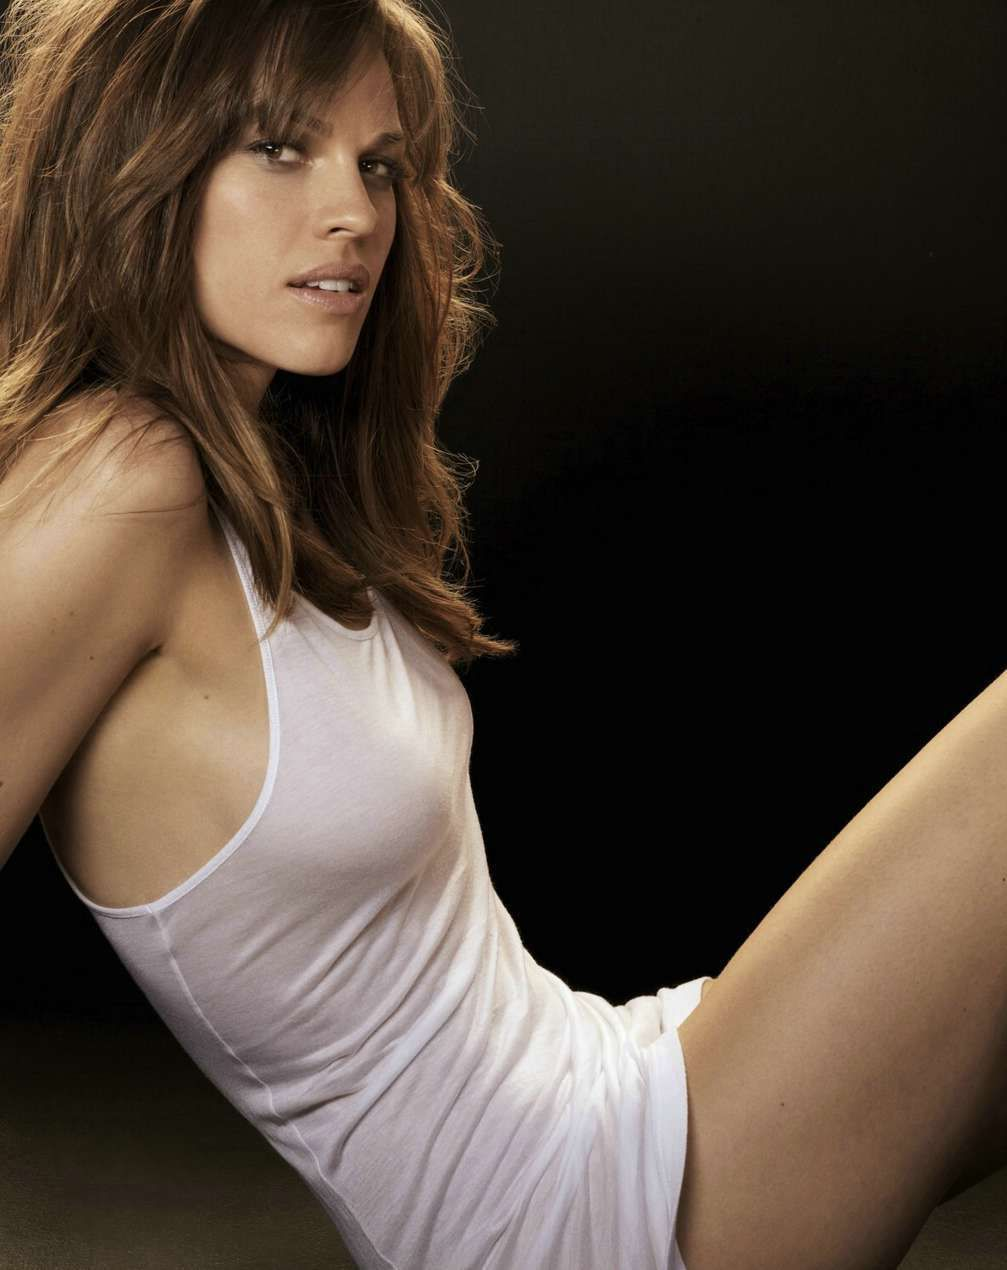 Hilary Swank With Images Celebrities